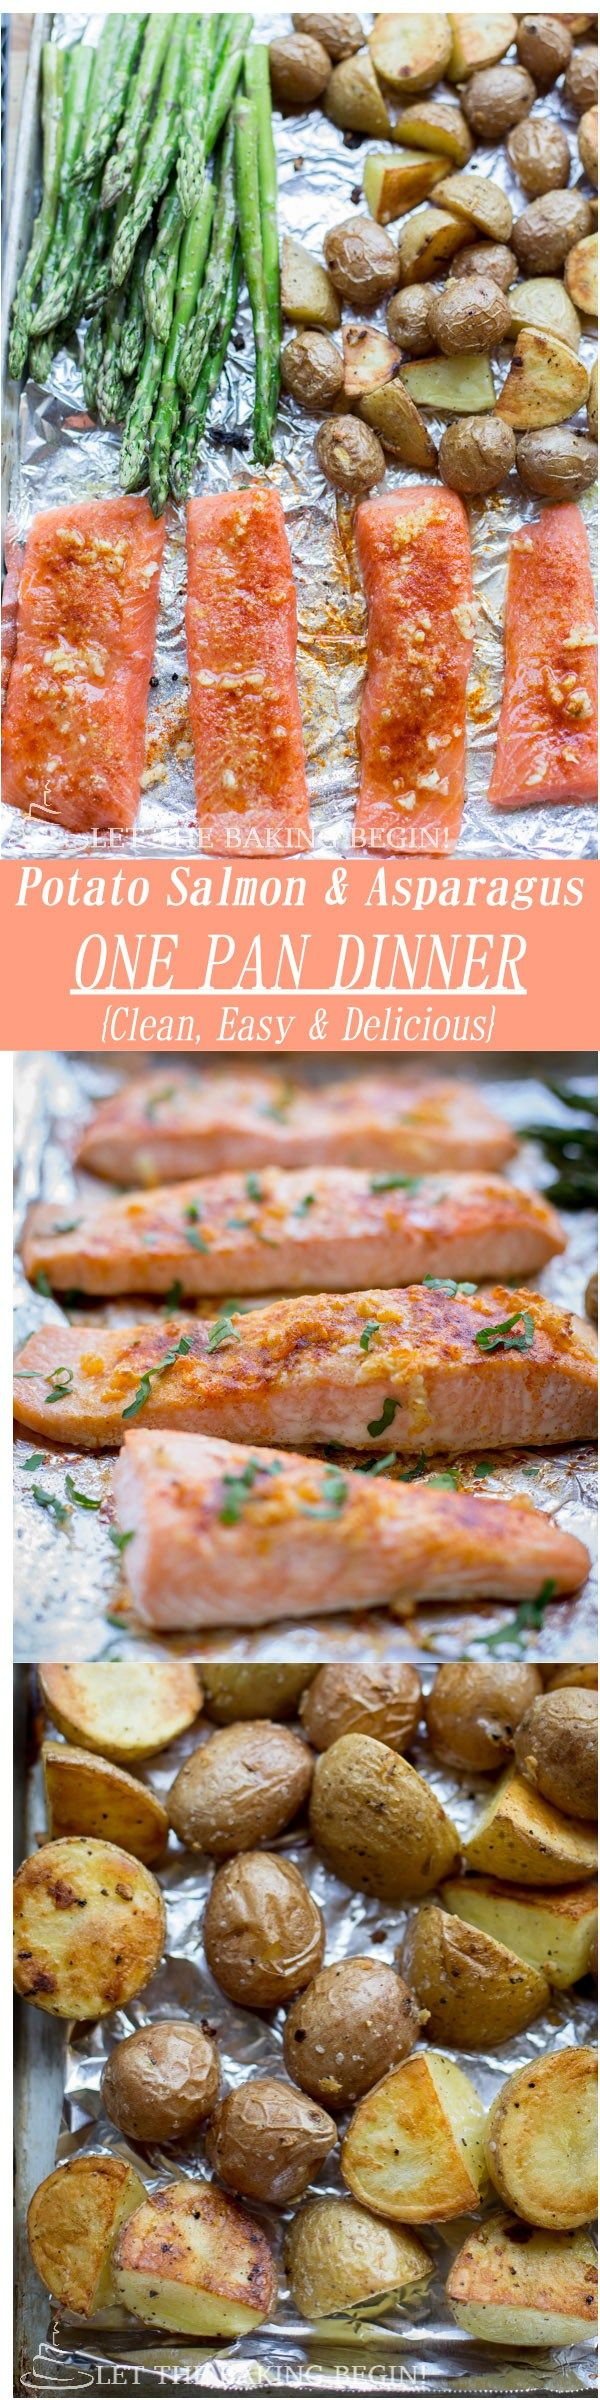 Potato Salmon Asparagus One Pan Dinner – Clean, Easy and Delicious way to make dinner all in one pan